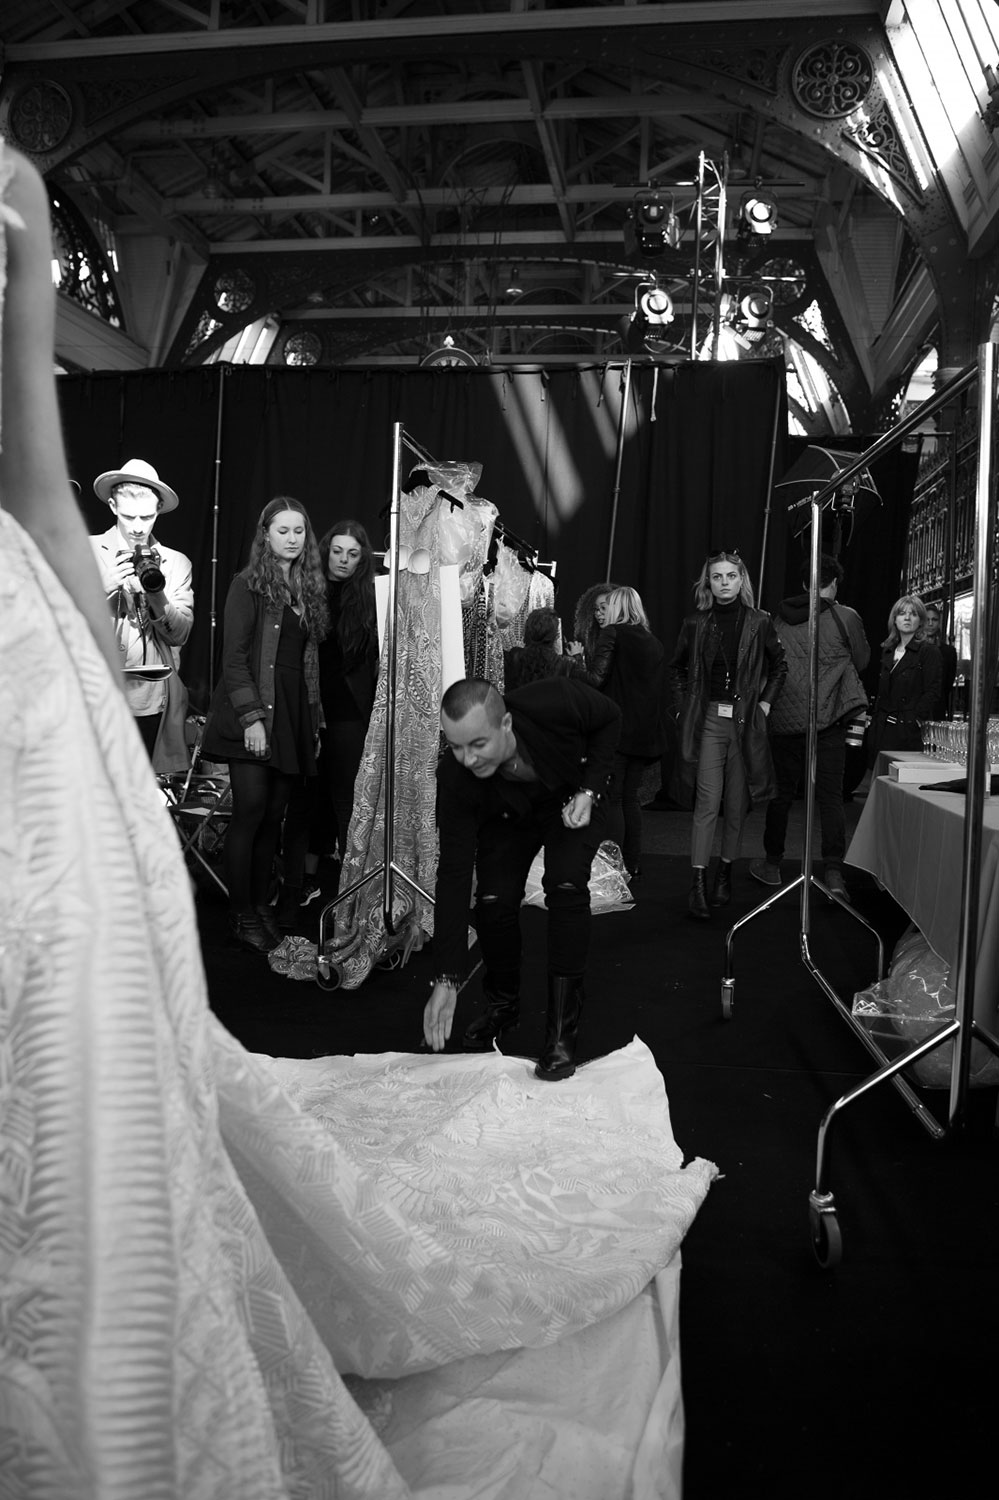 Julien Macdonald Spring Summer 2016 Backstage